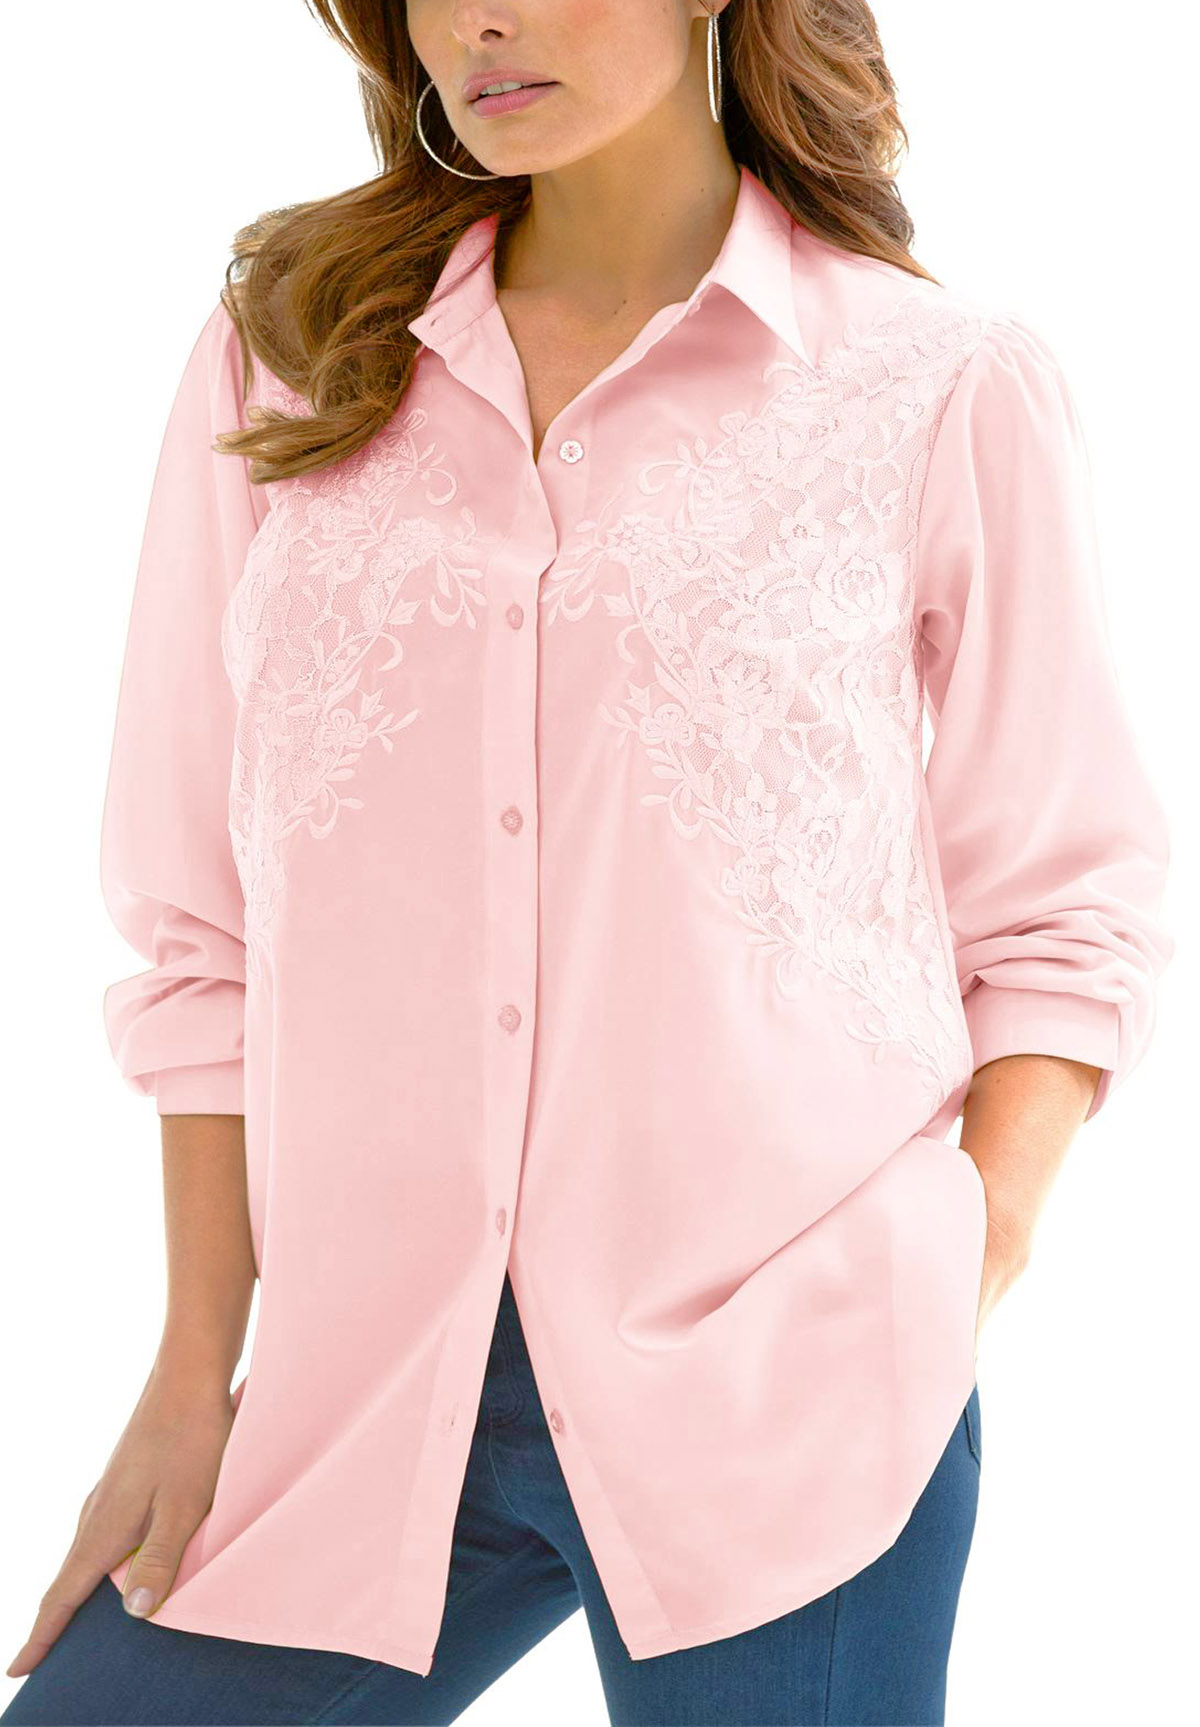 Denim 24/7 PINK Longline Embroidered Shirt - Plus Size 12 to 32